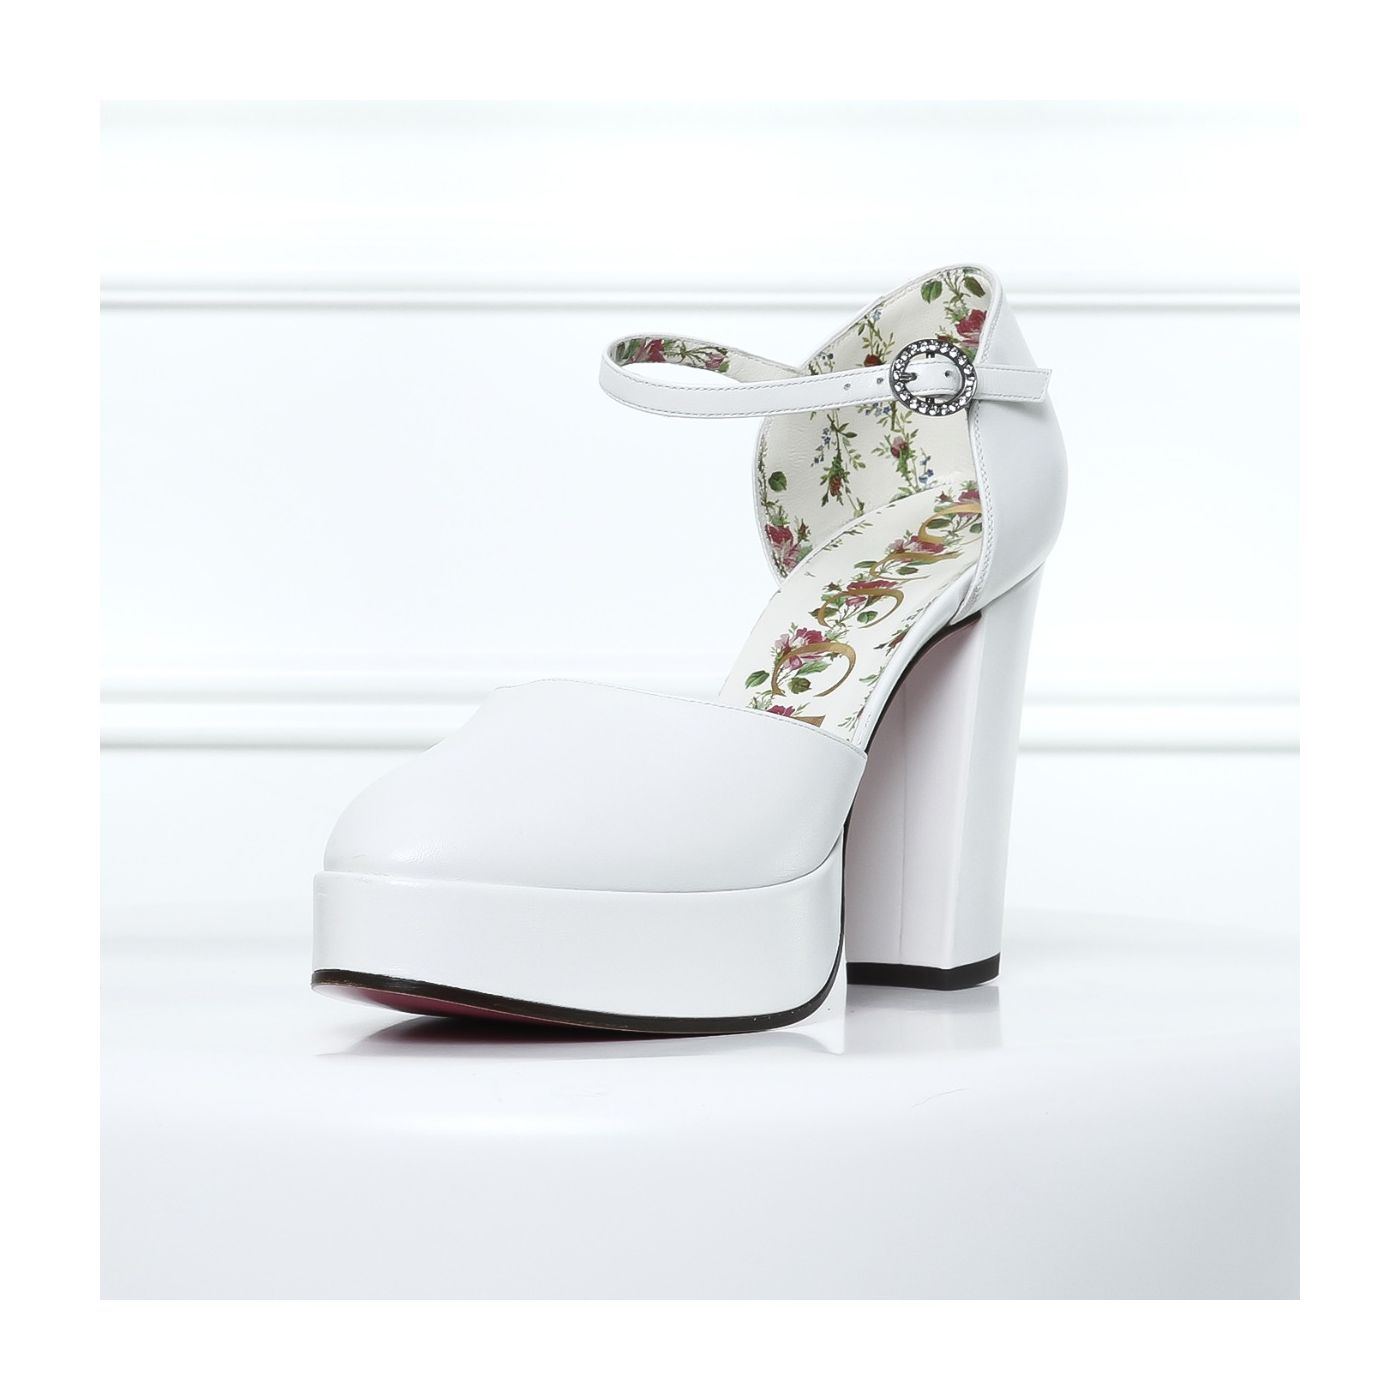 Gucci White Platform Ankle Strap Pumps Size 37.5